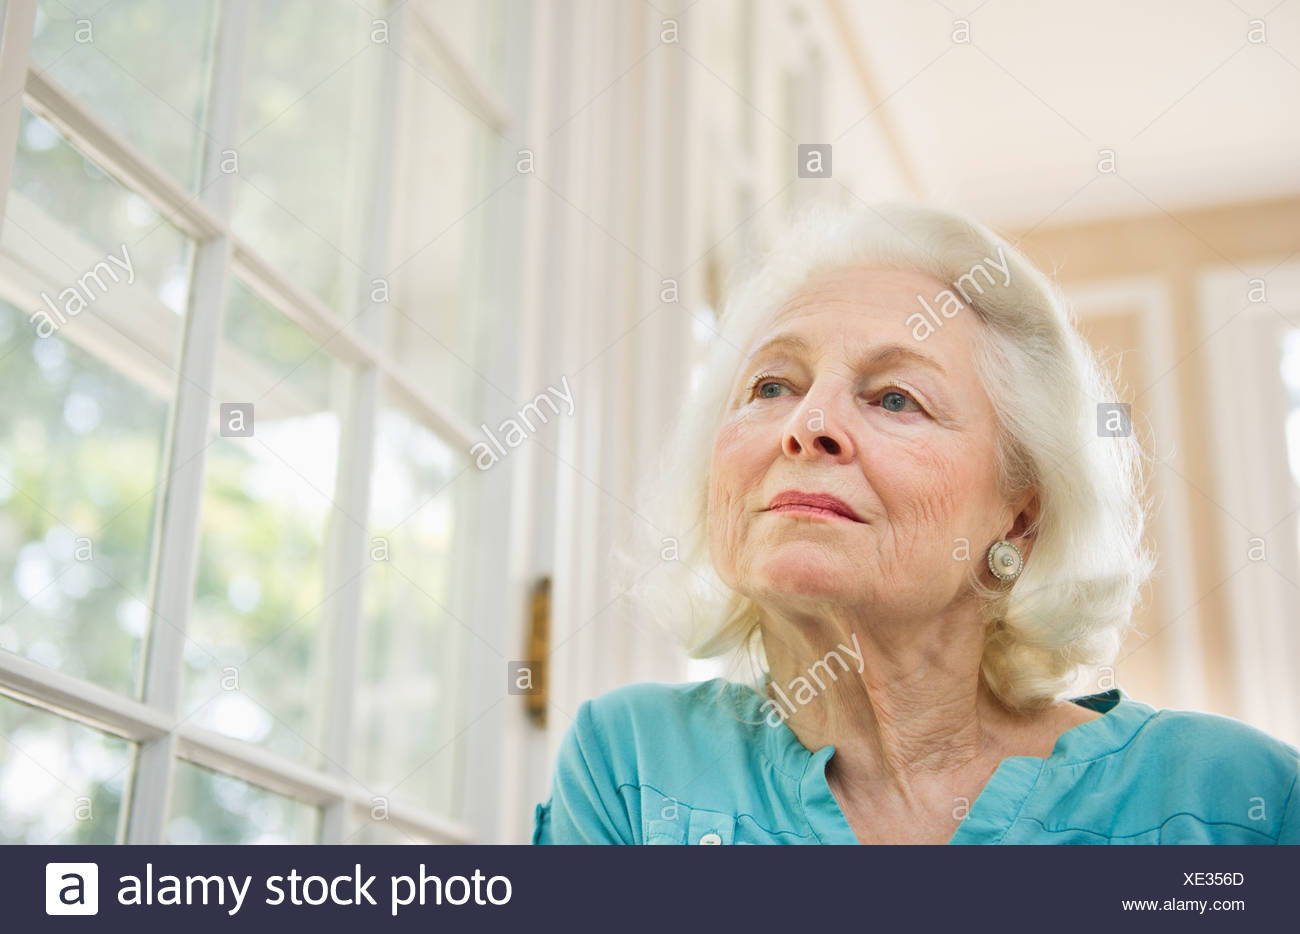 USA, New York State, Old Westbury, Portrait of pensive senior woman - Stock Image